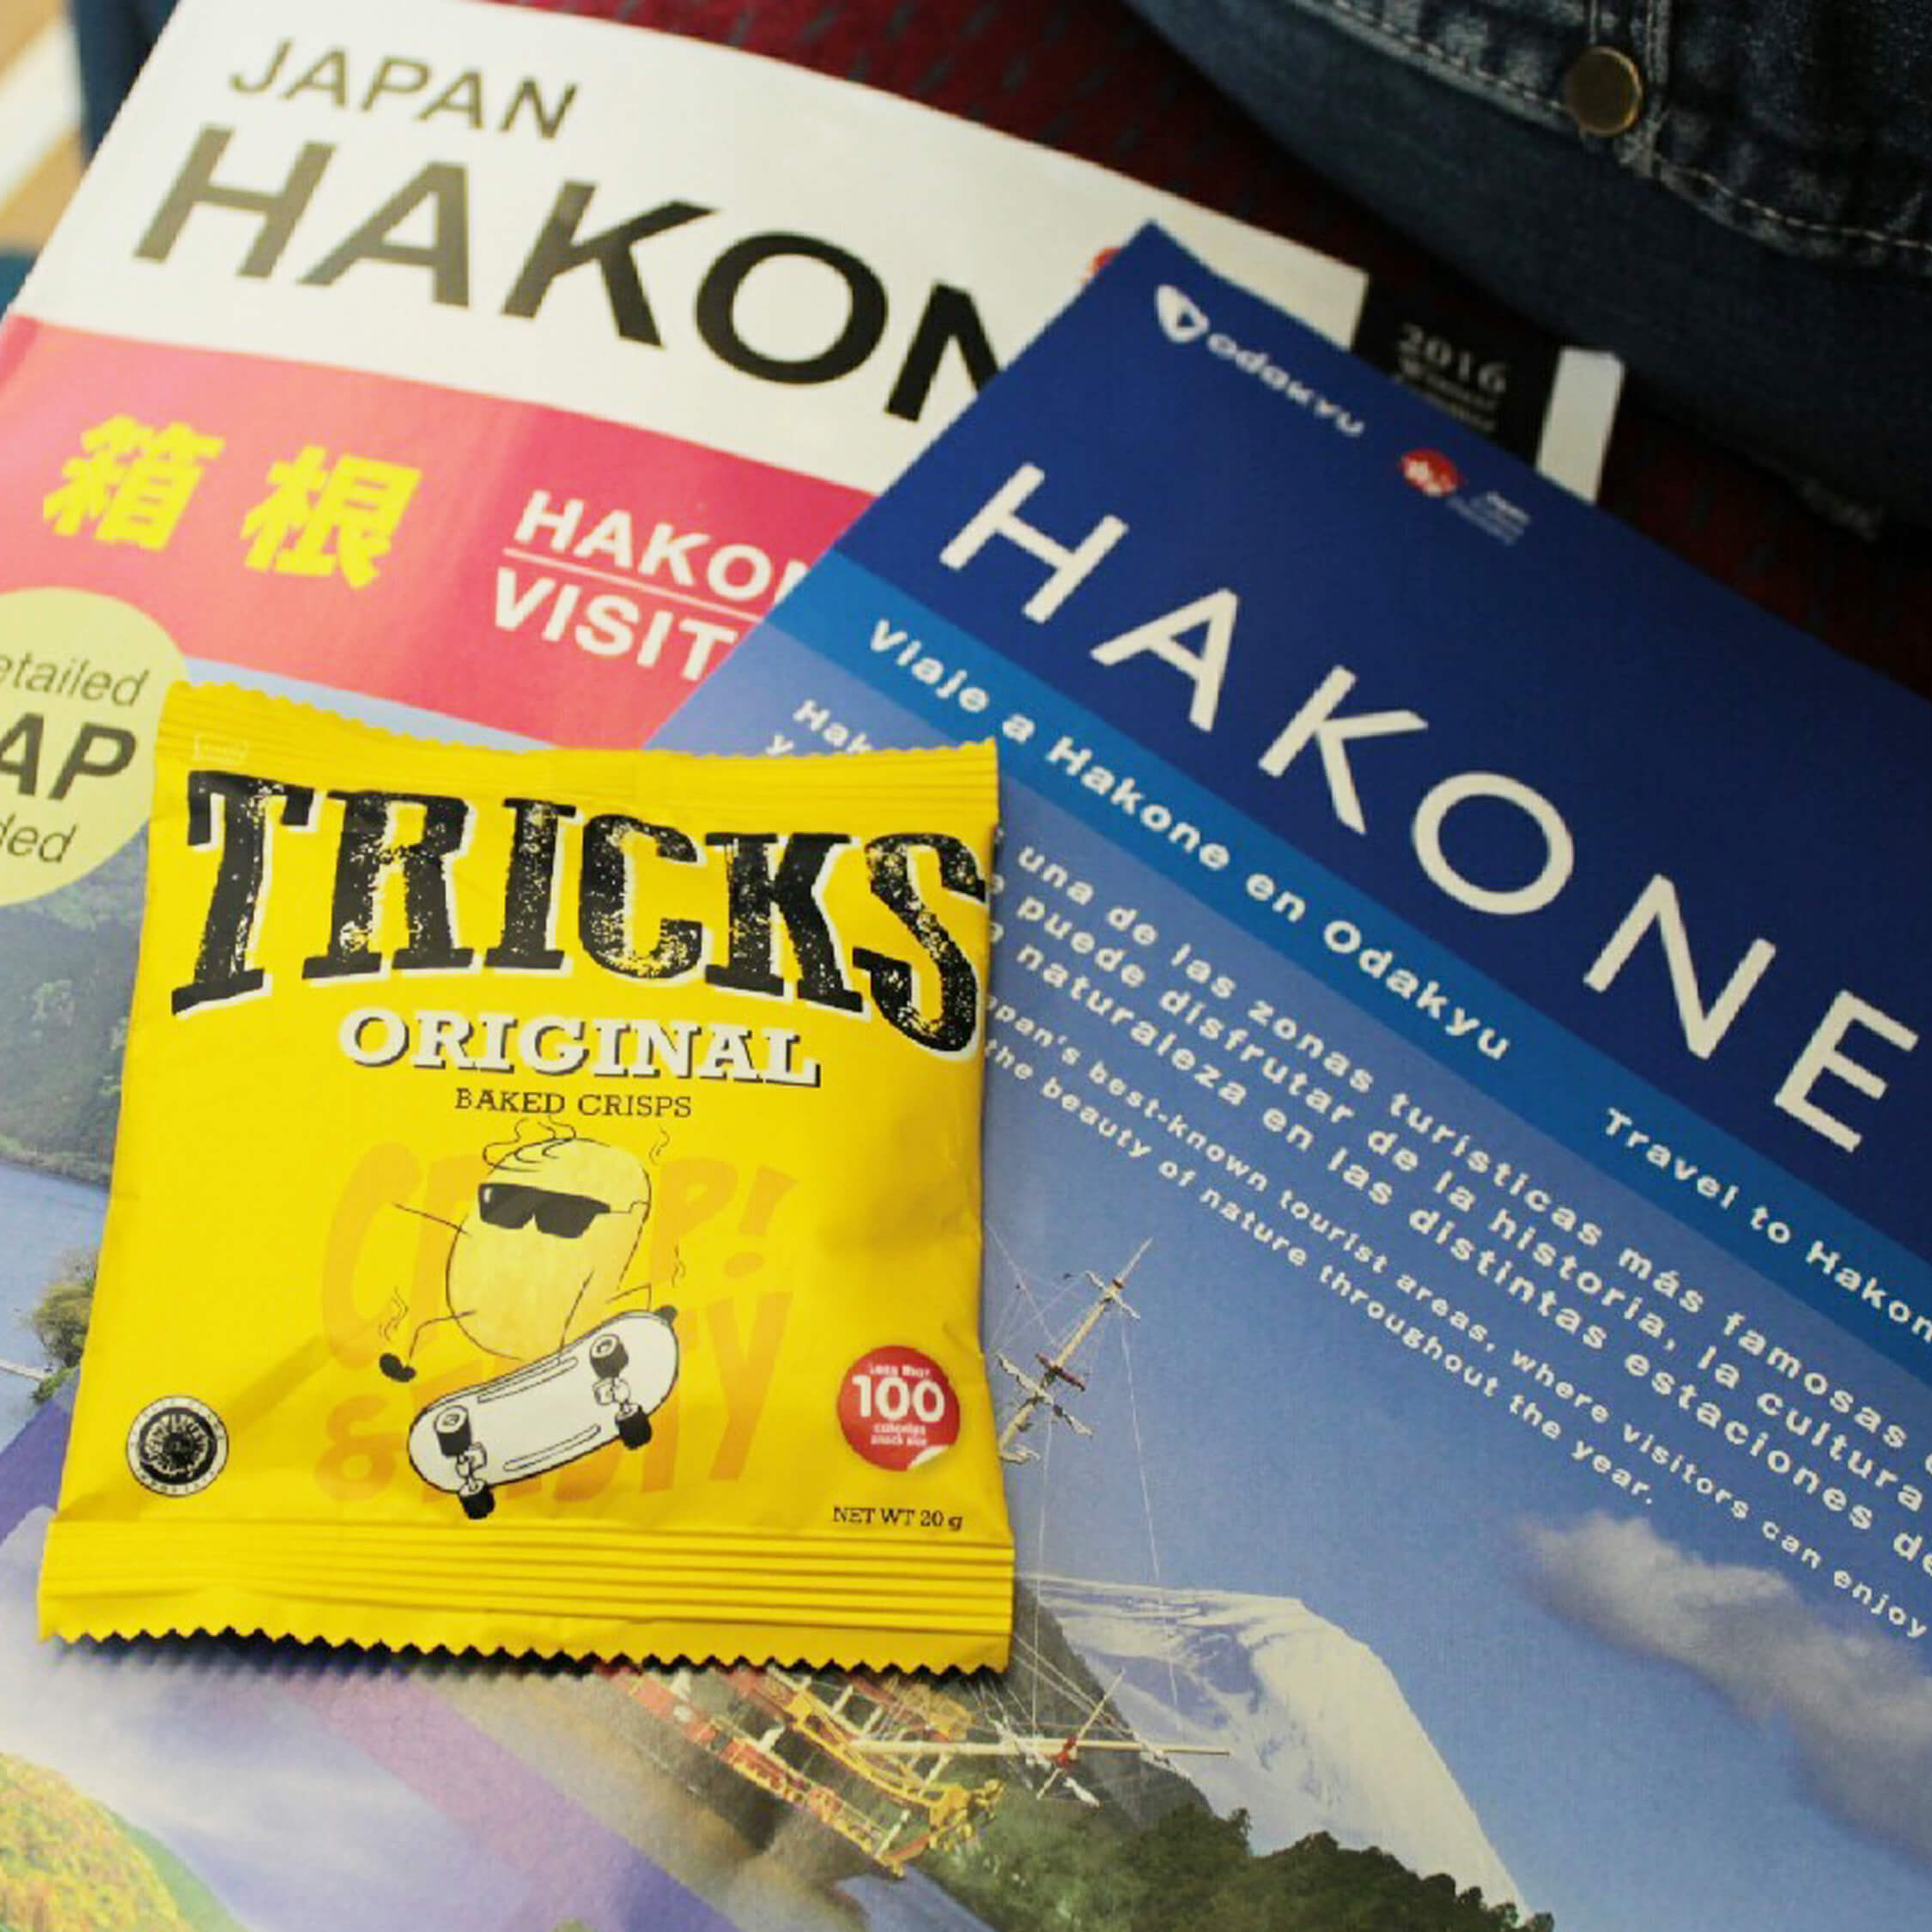 Hakone Guide Book